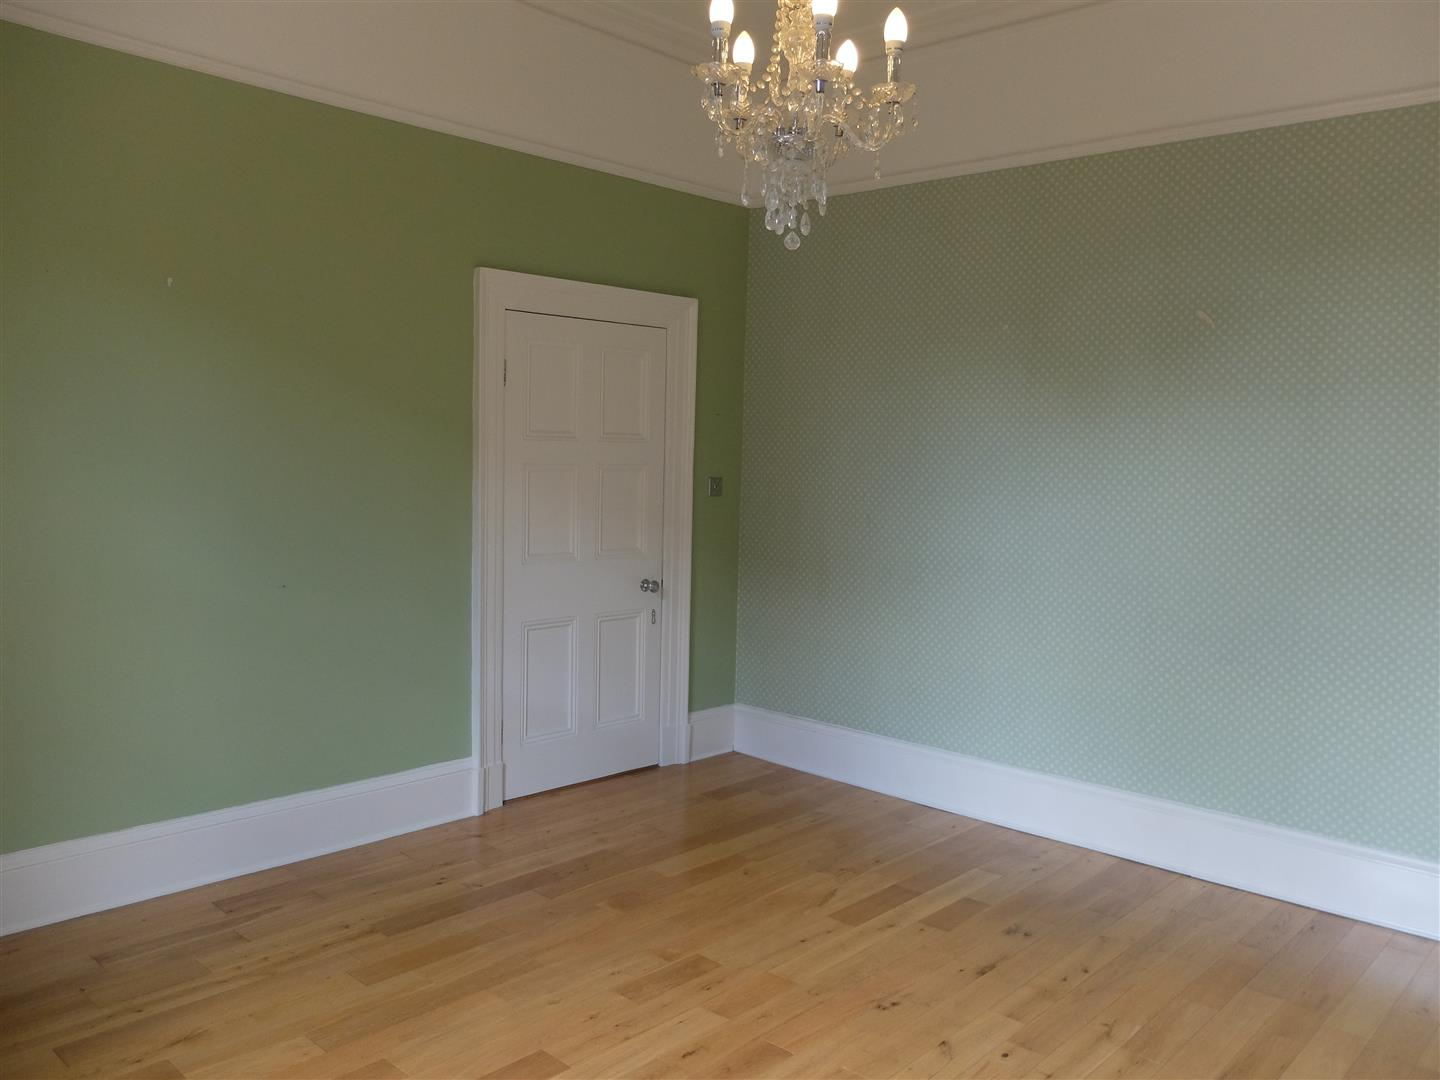 5 Bedrooms House - Terraced On Sale 40 Victoria Place Carlisle